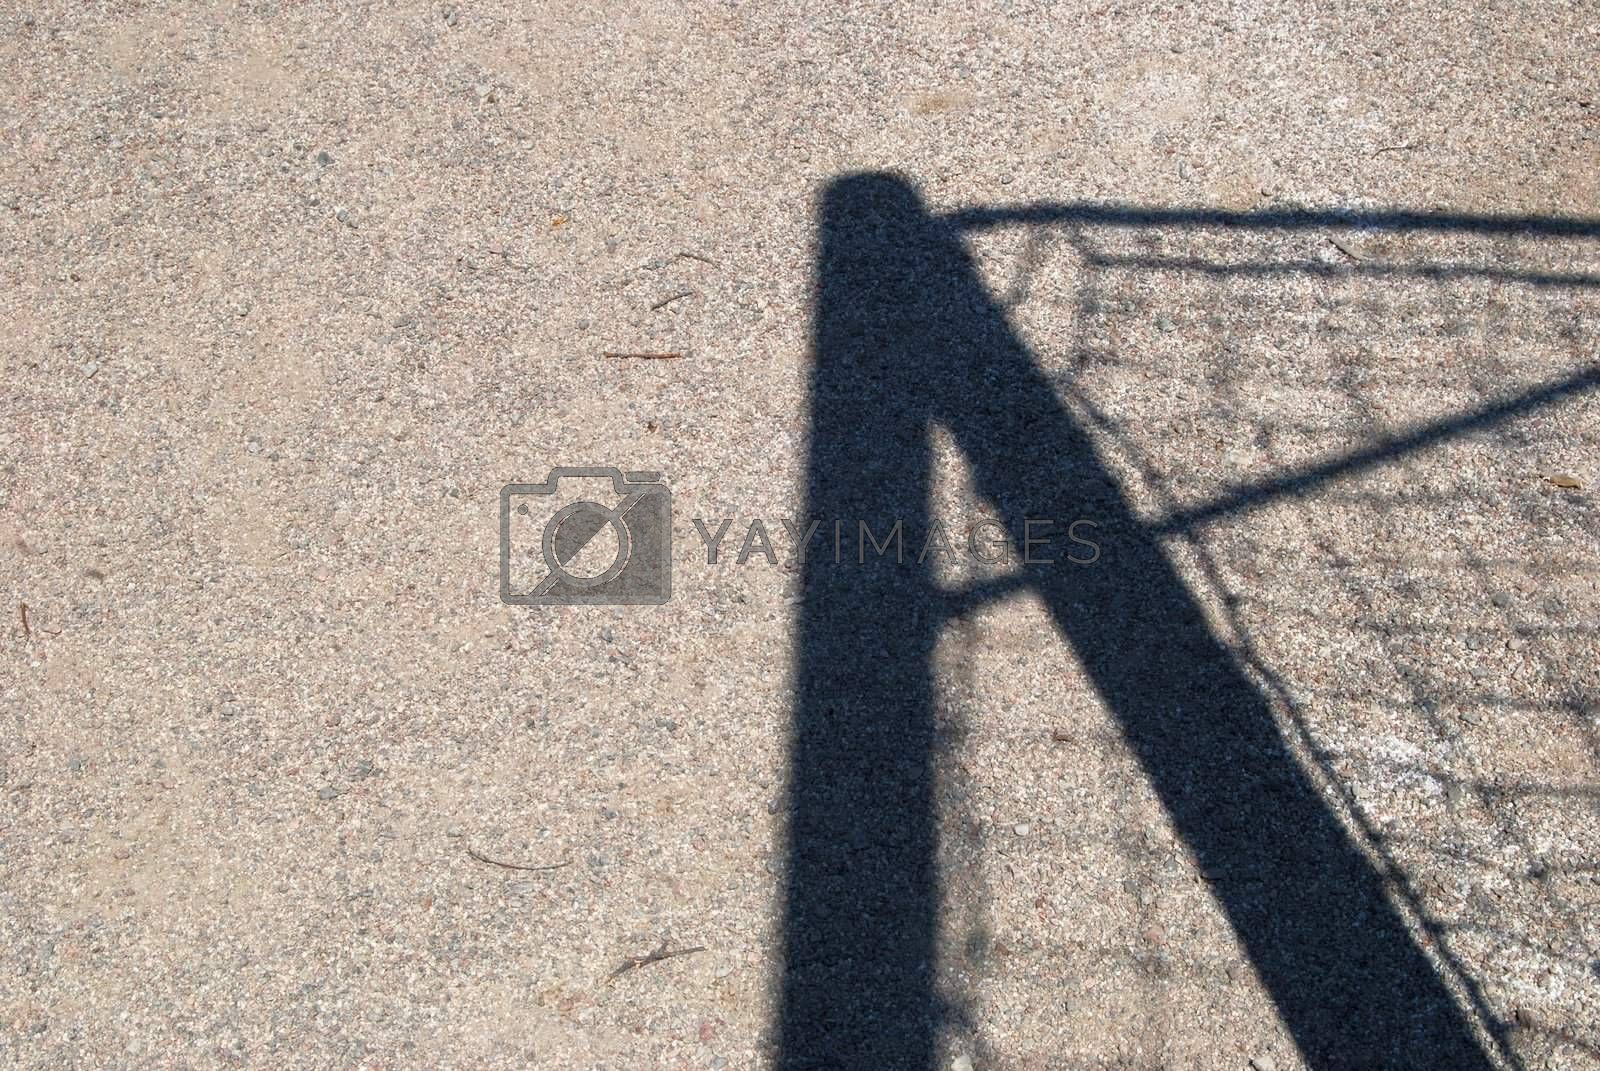 Shadow in the sand by windmill